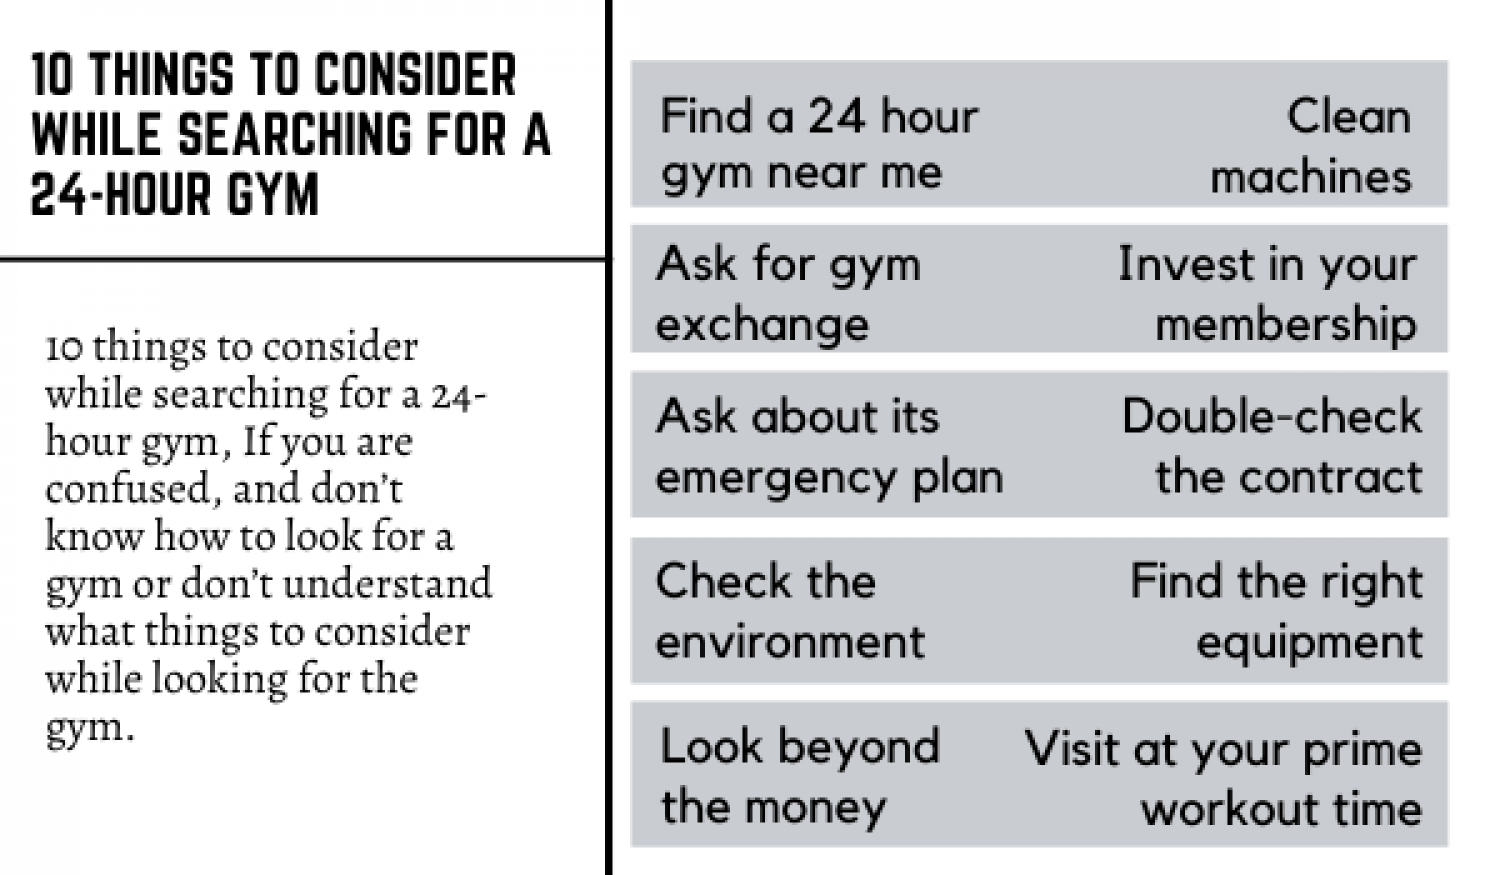 10 THINGS TO CONSIDER WHILE SEARCHING FOR A 24-HOUR GYM Infographic